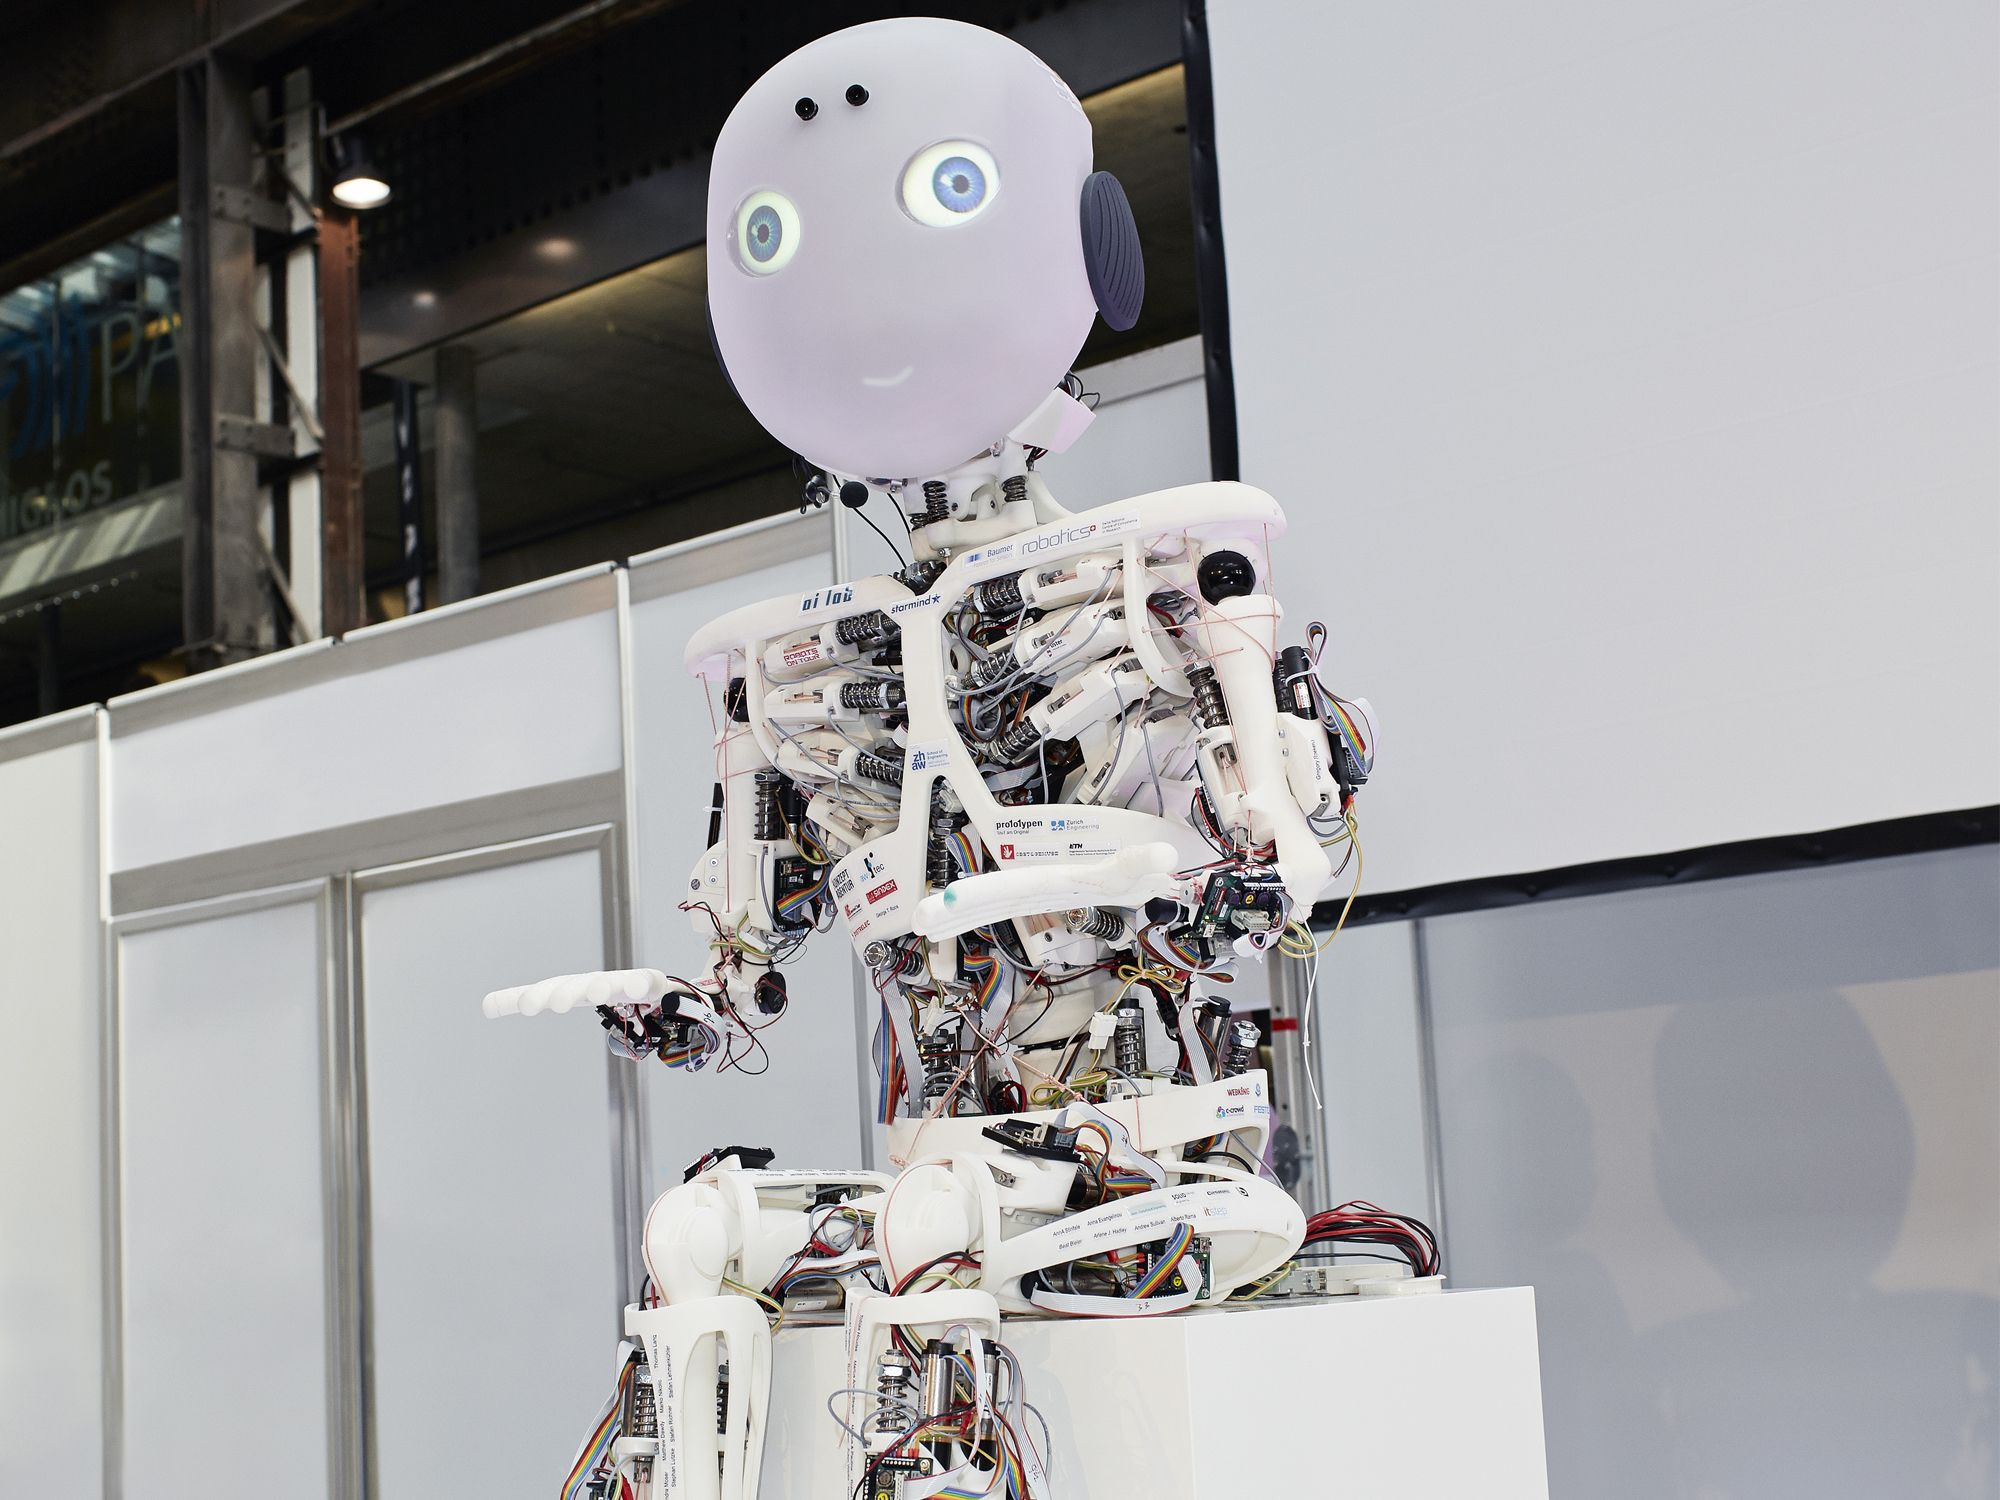 Are Robots Going To Destroy Us All?